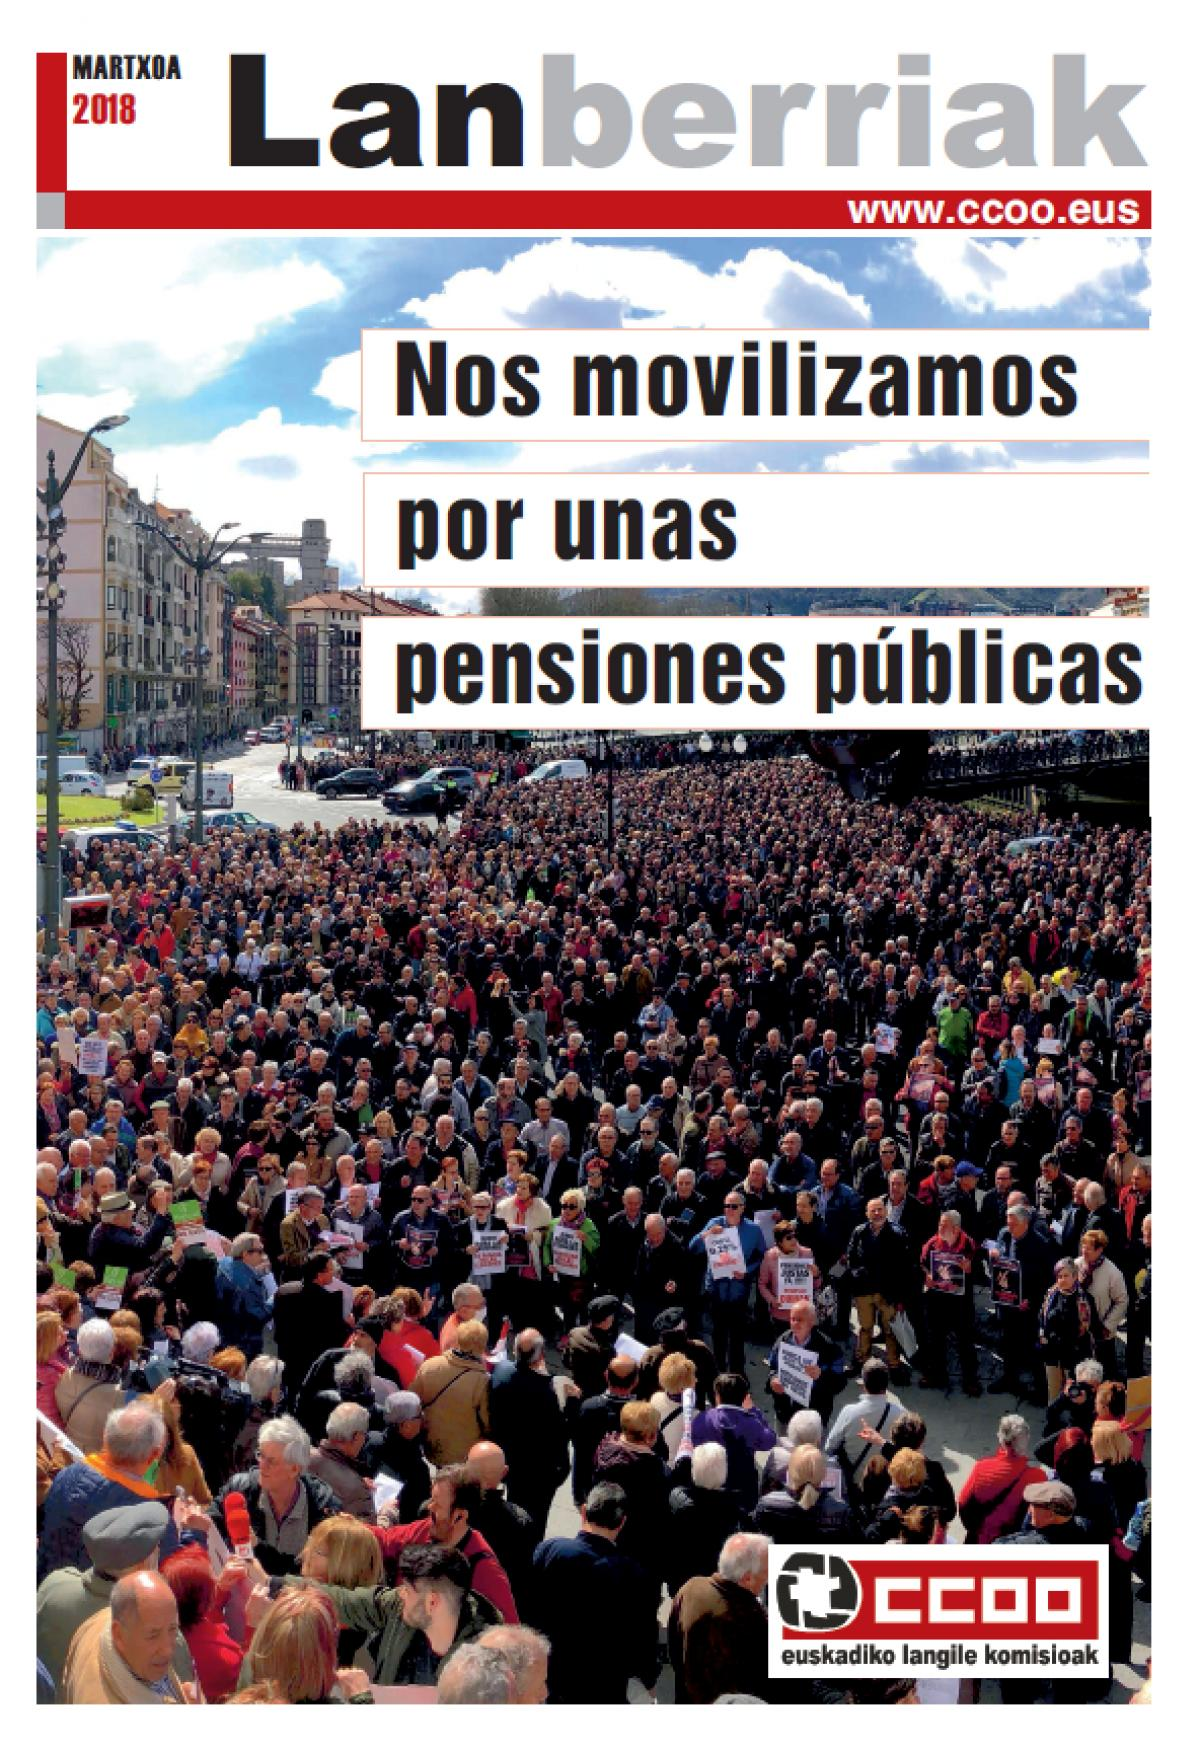 Lanberriak pensiones